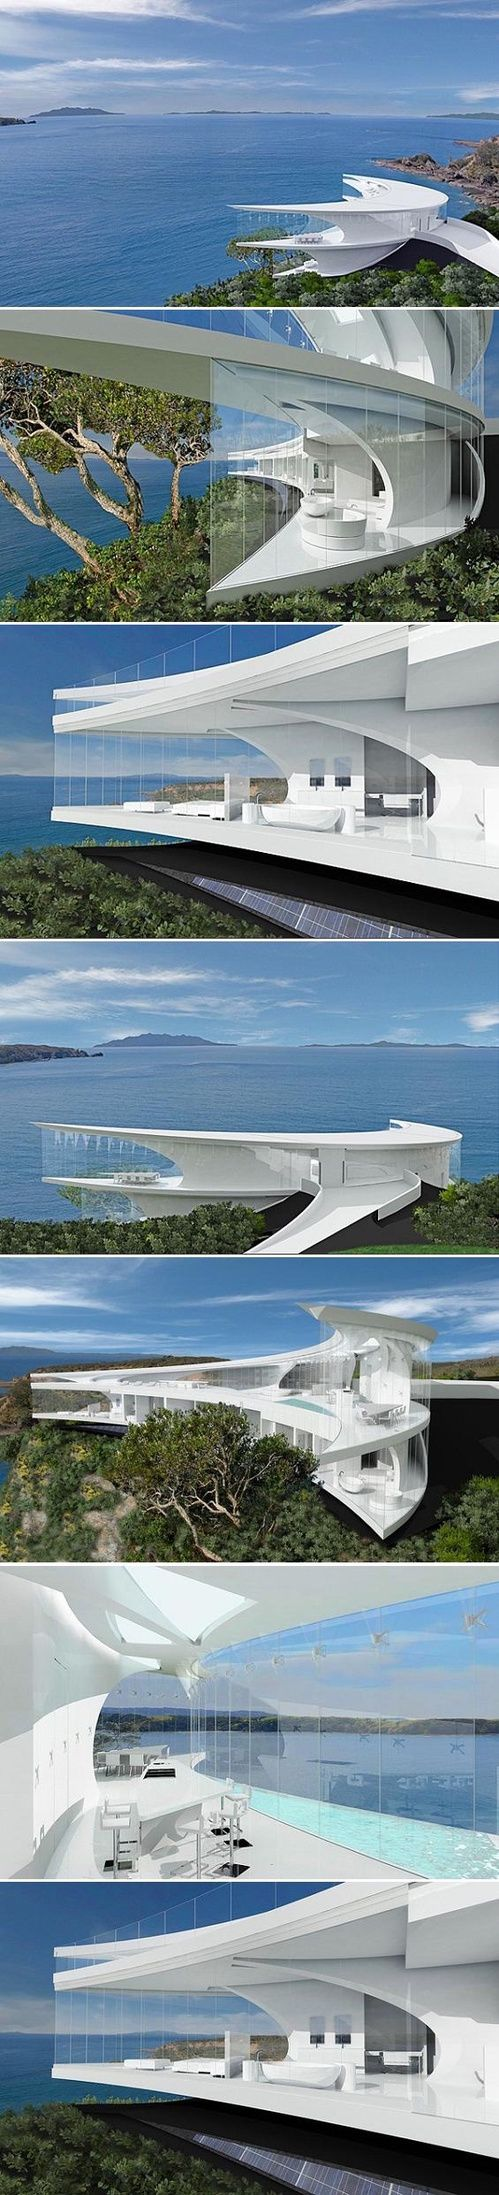 "The Mahina House – Futuristic house, Kawau Island, North of Auckland, New Zealand. Designed in a curved crescent shape with ceiling-to-floor glass and a modern, white interior design. The house has a floor area of 827sq m and will feature a plant room, deck, swimming pool and ""thermal mass"" to regulate internal temperatures. ."